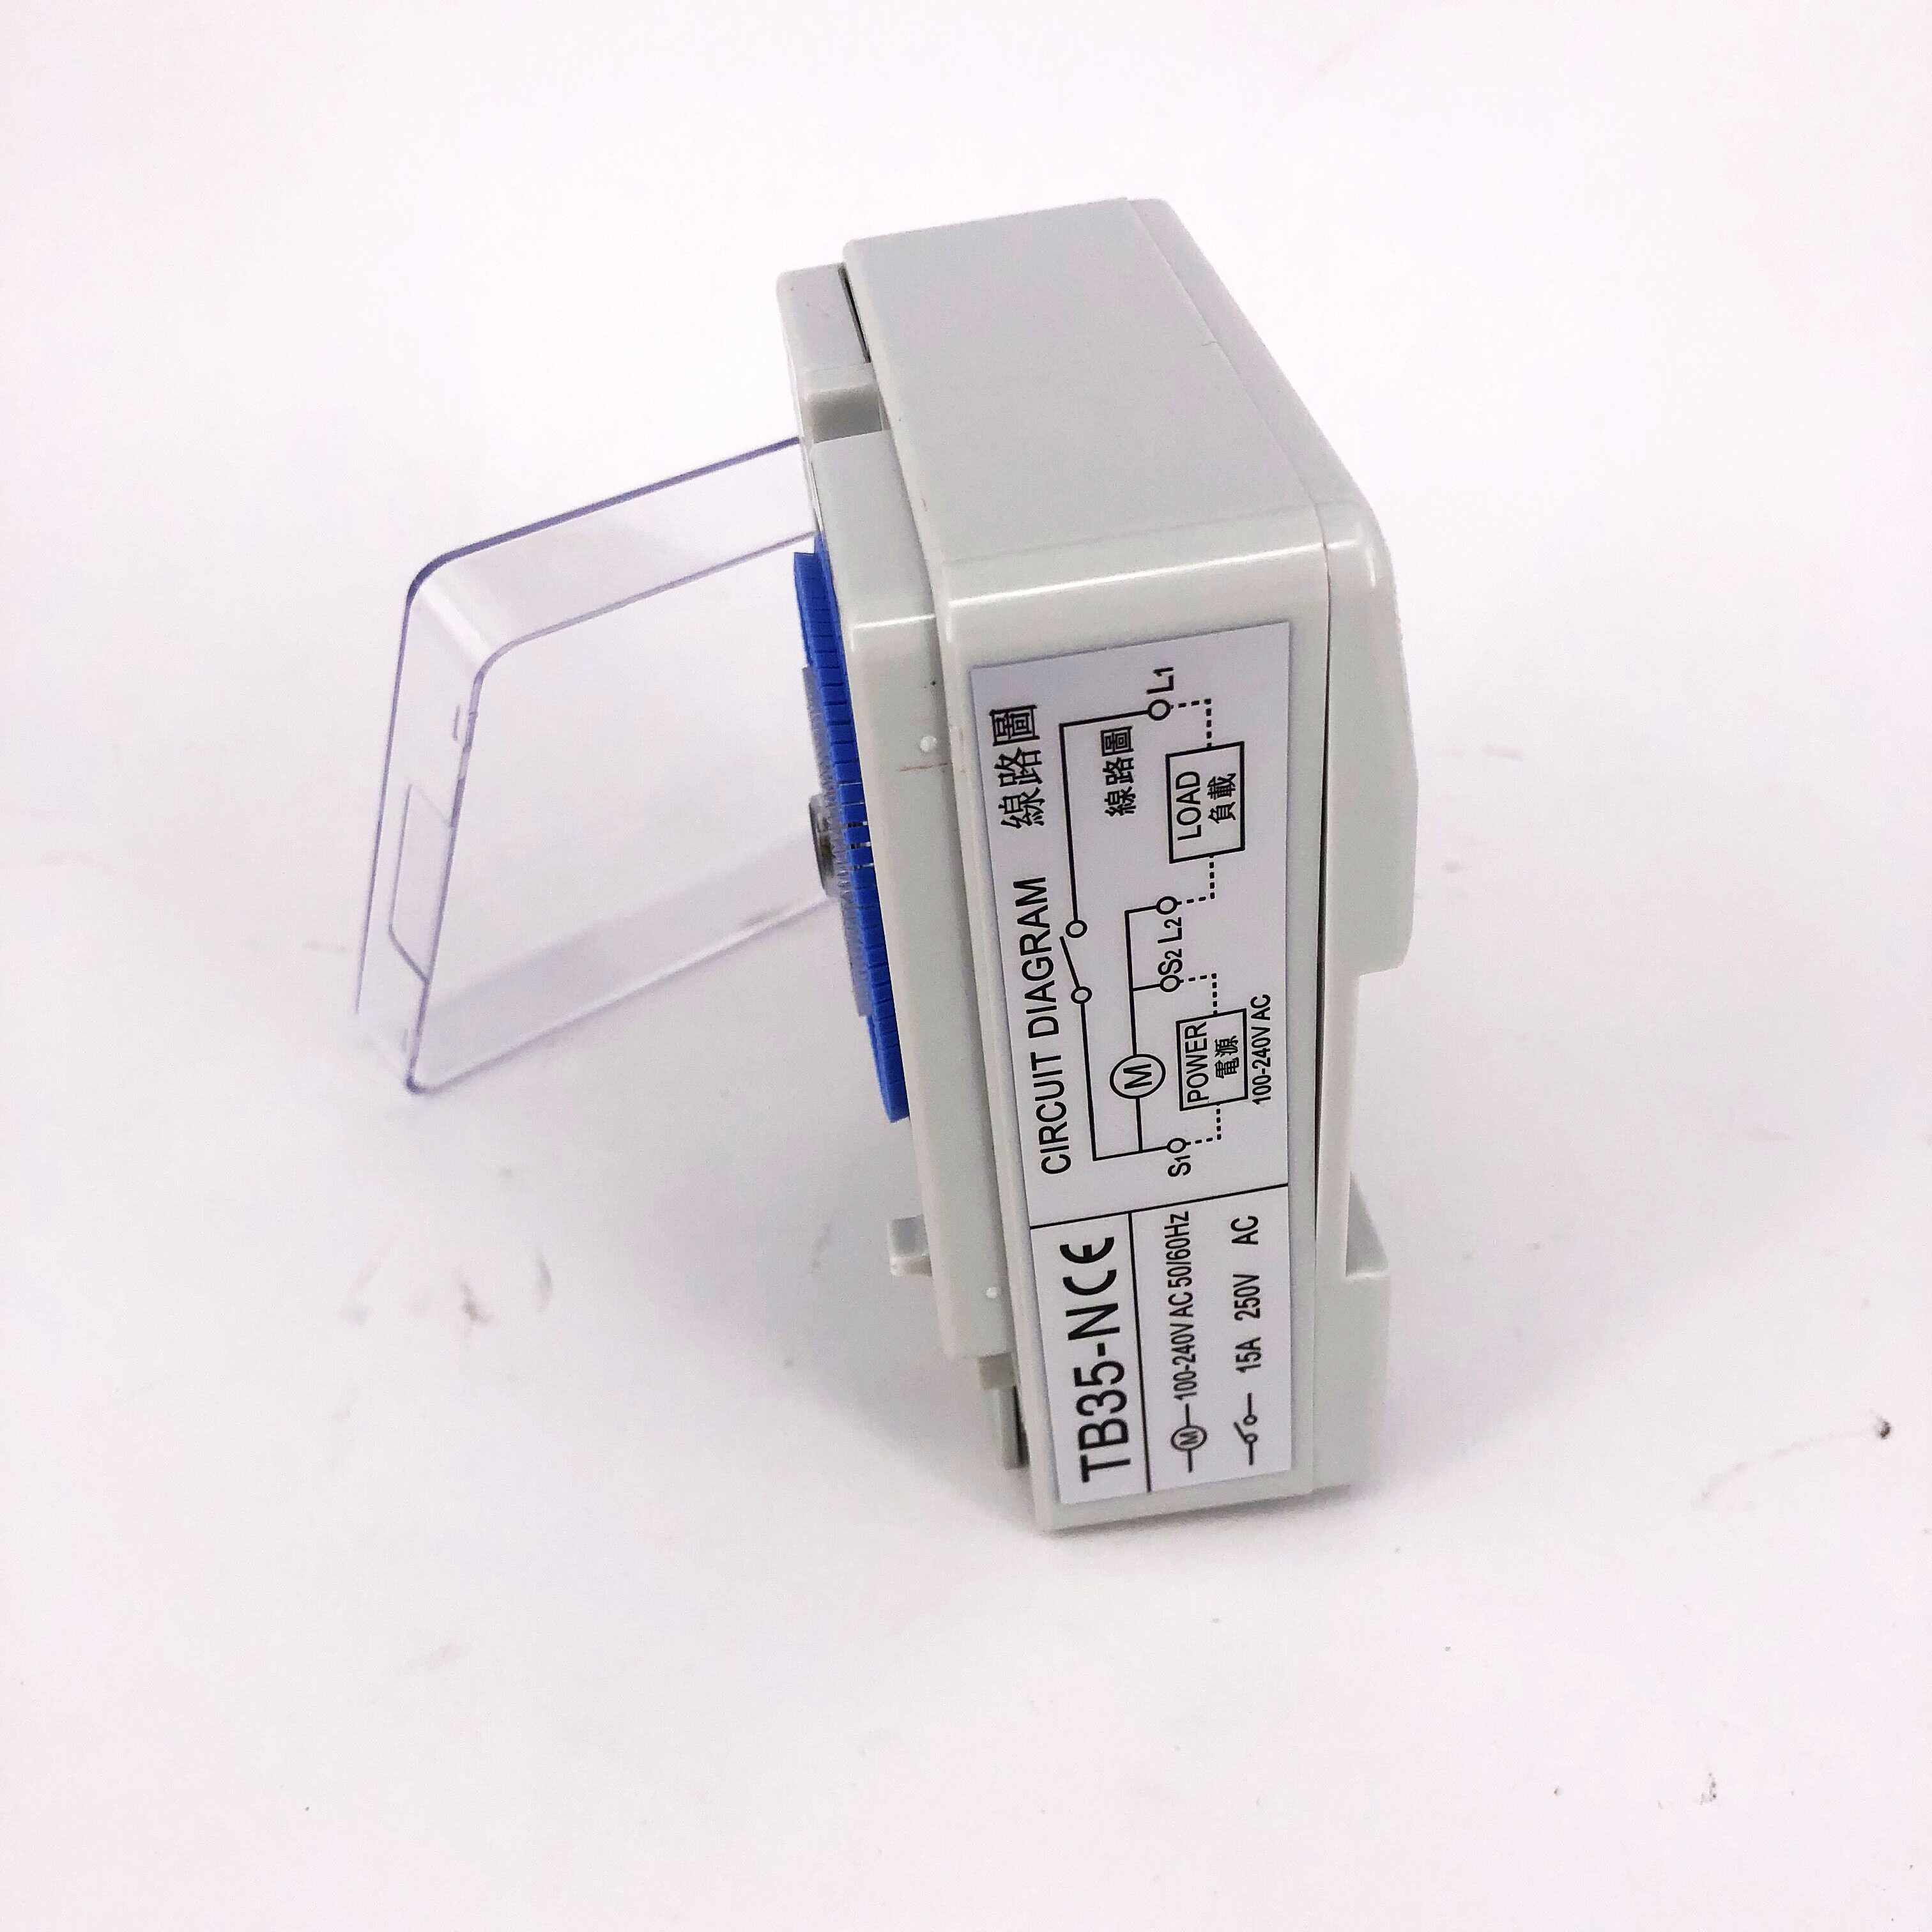 Tb388 Automatic Off Light Switch Timer Bell Buy Time Circuit Diagram Timertimertimer Product On